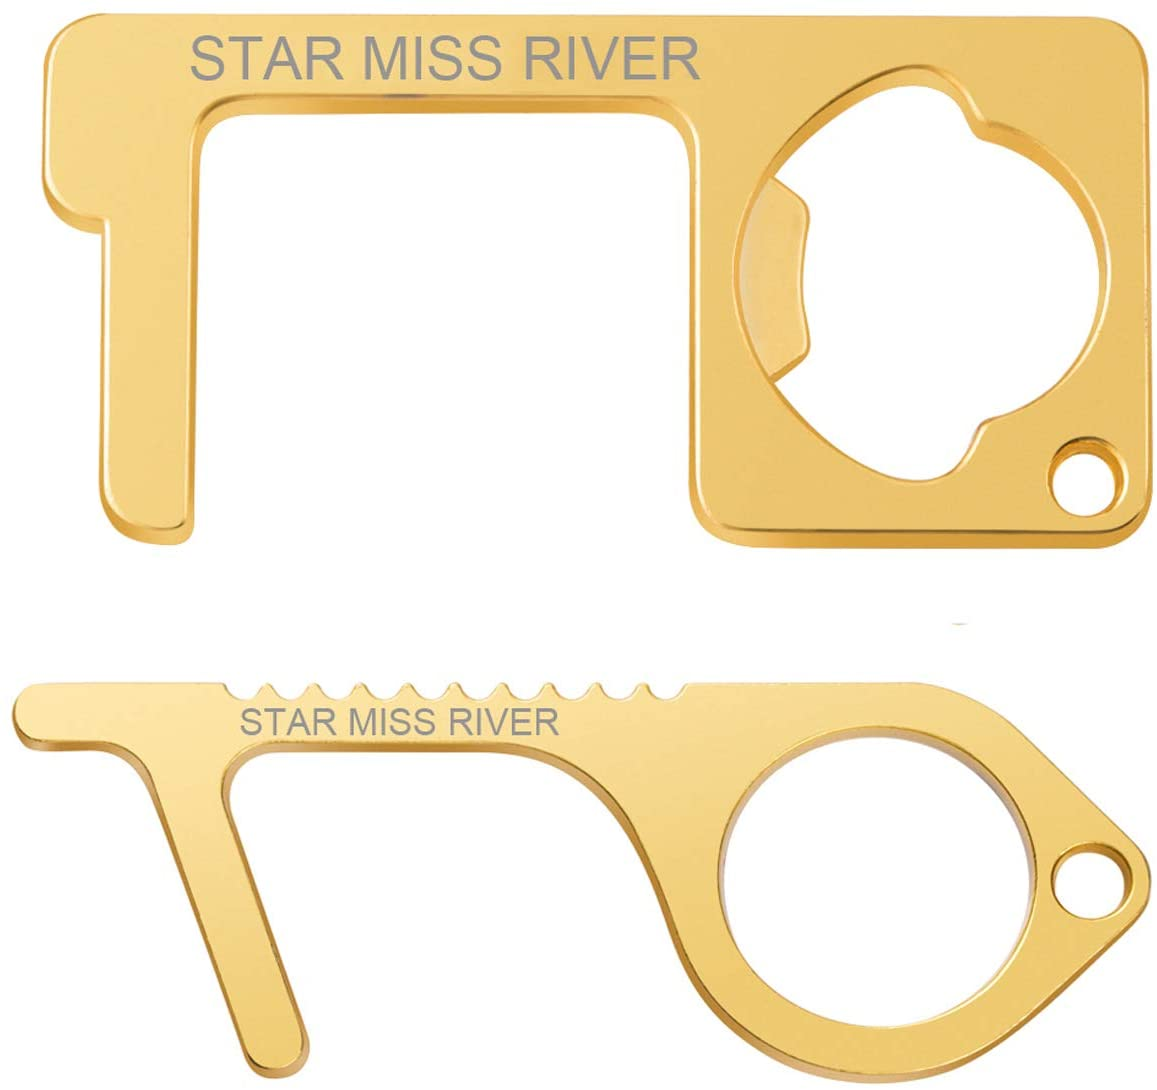 Star Miss River No Touch Door Opener Hand Keychain Tool with Beer Bottle Opener - 2 Pack for Couple